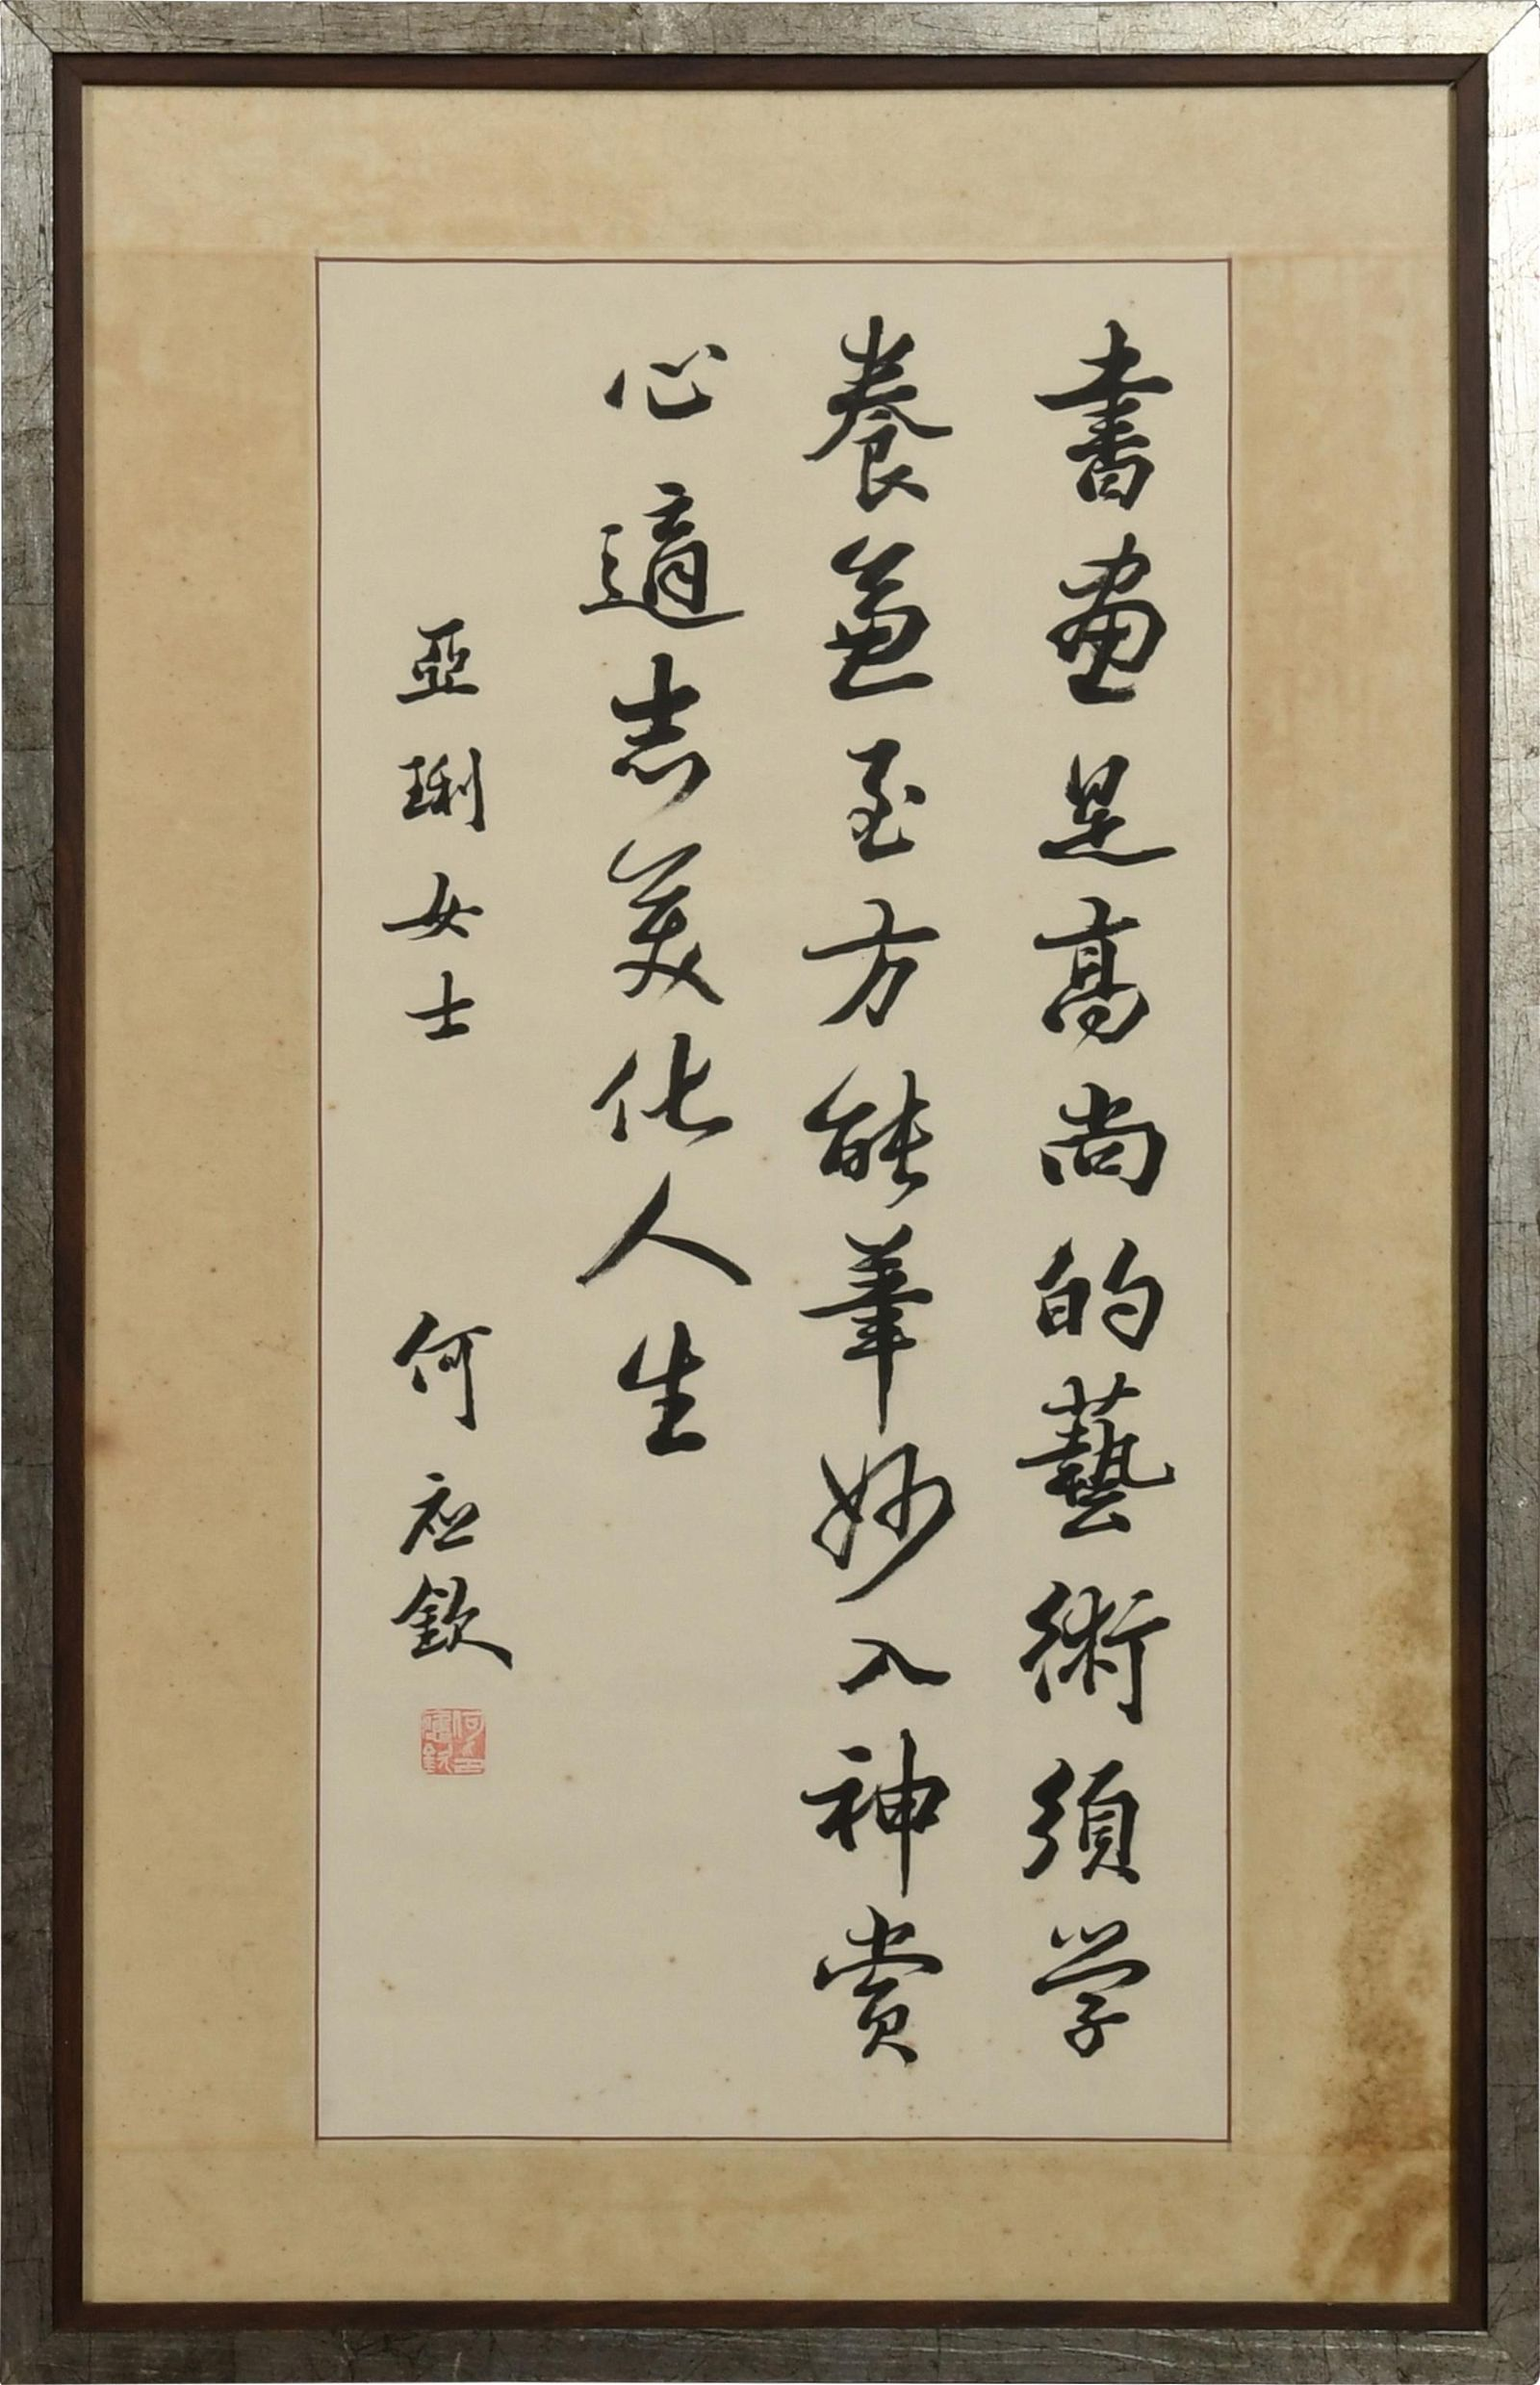 Chinese Calligraphy by He Yingqin